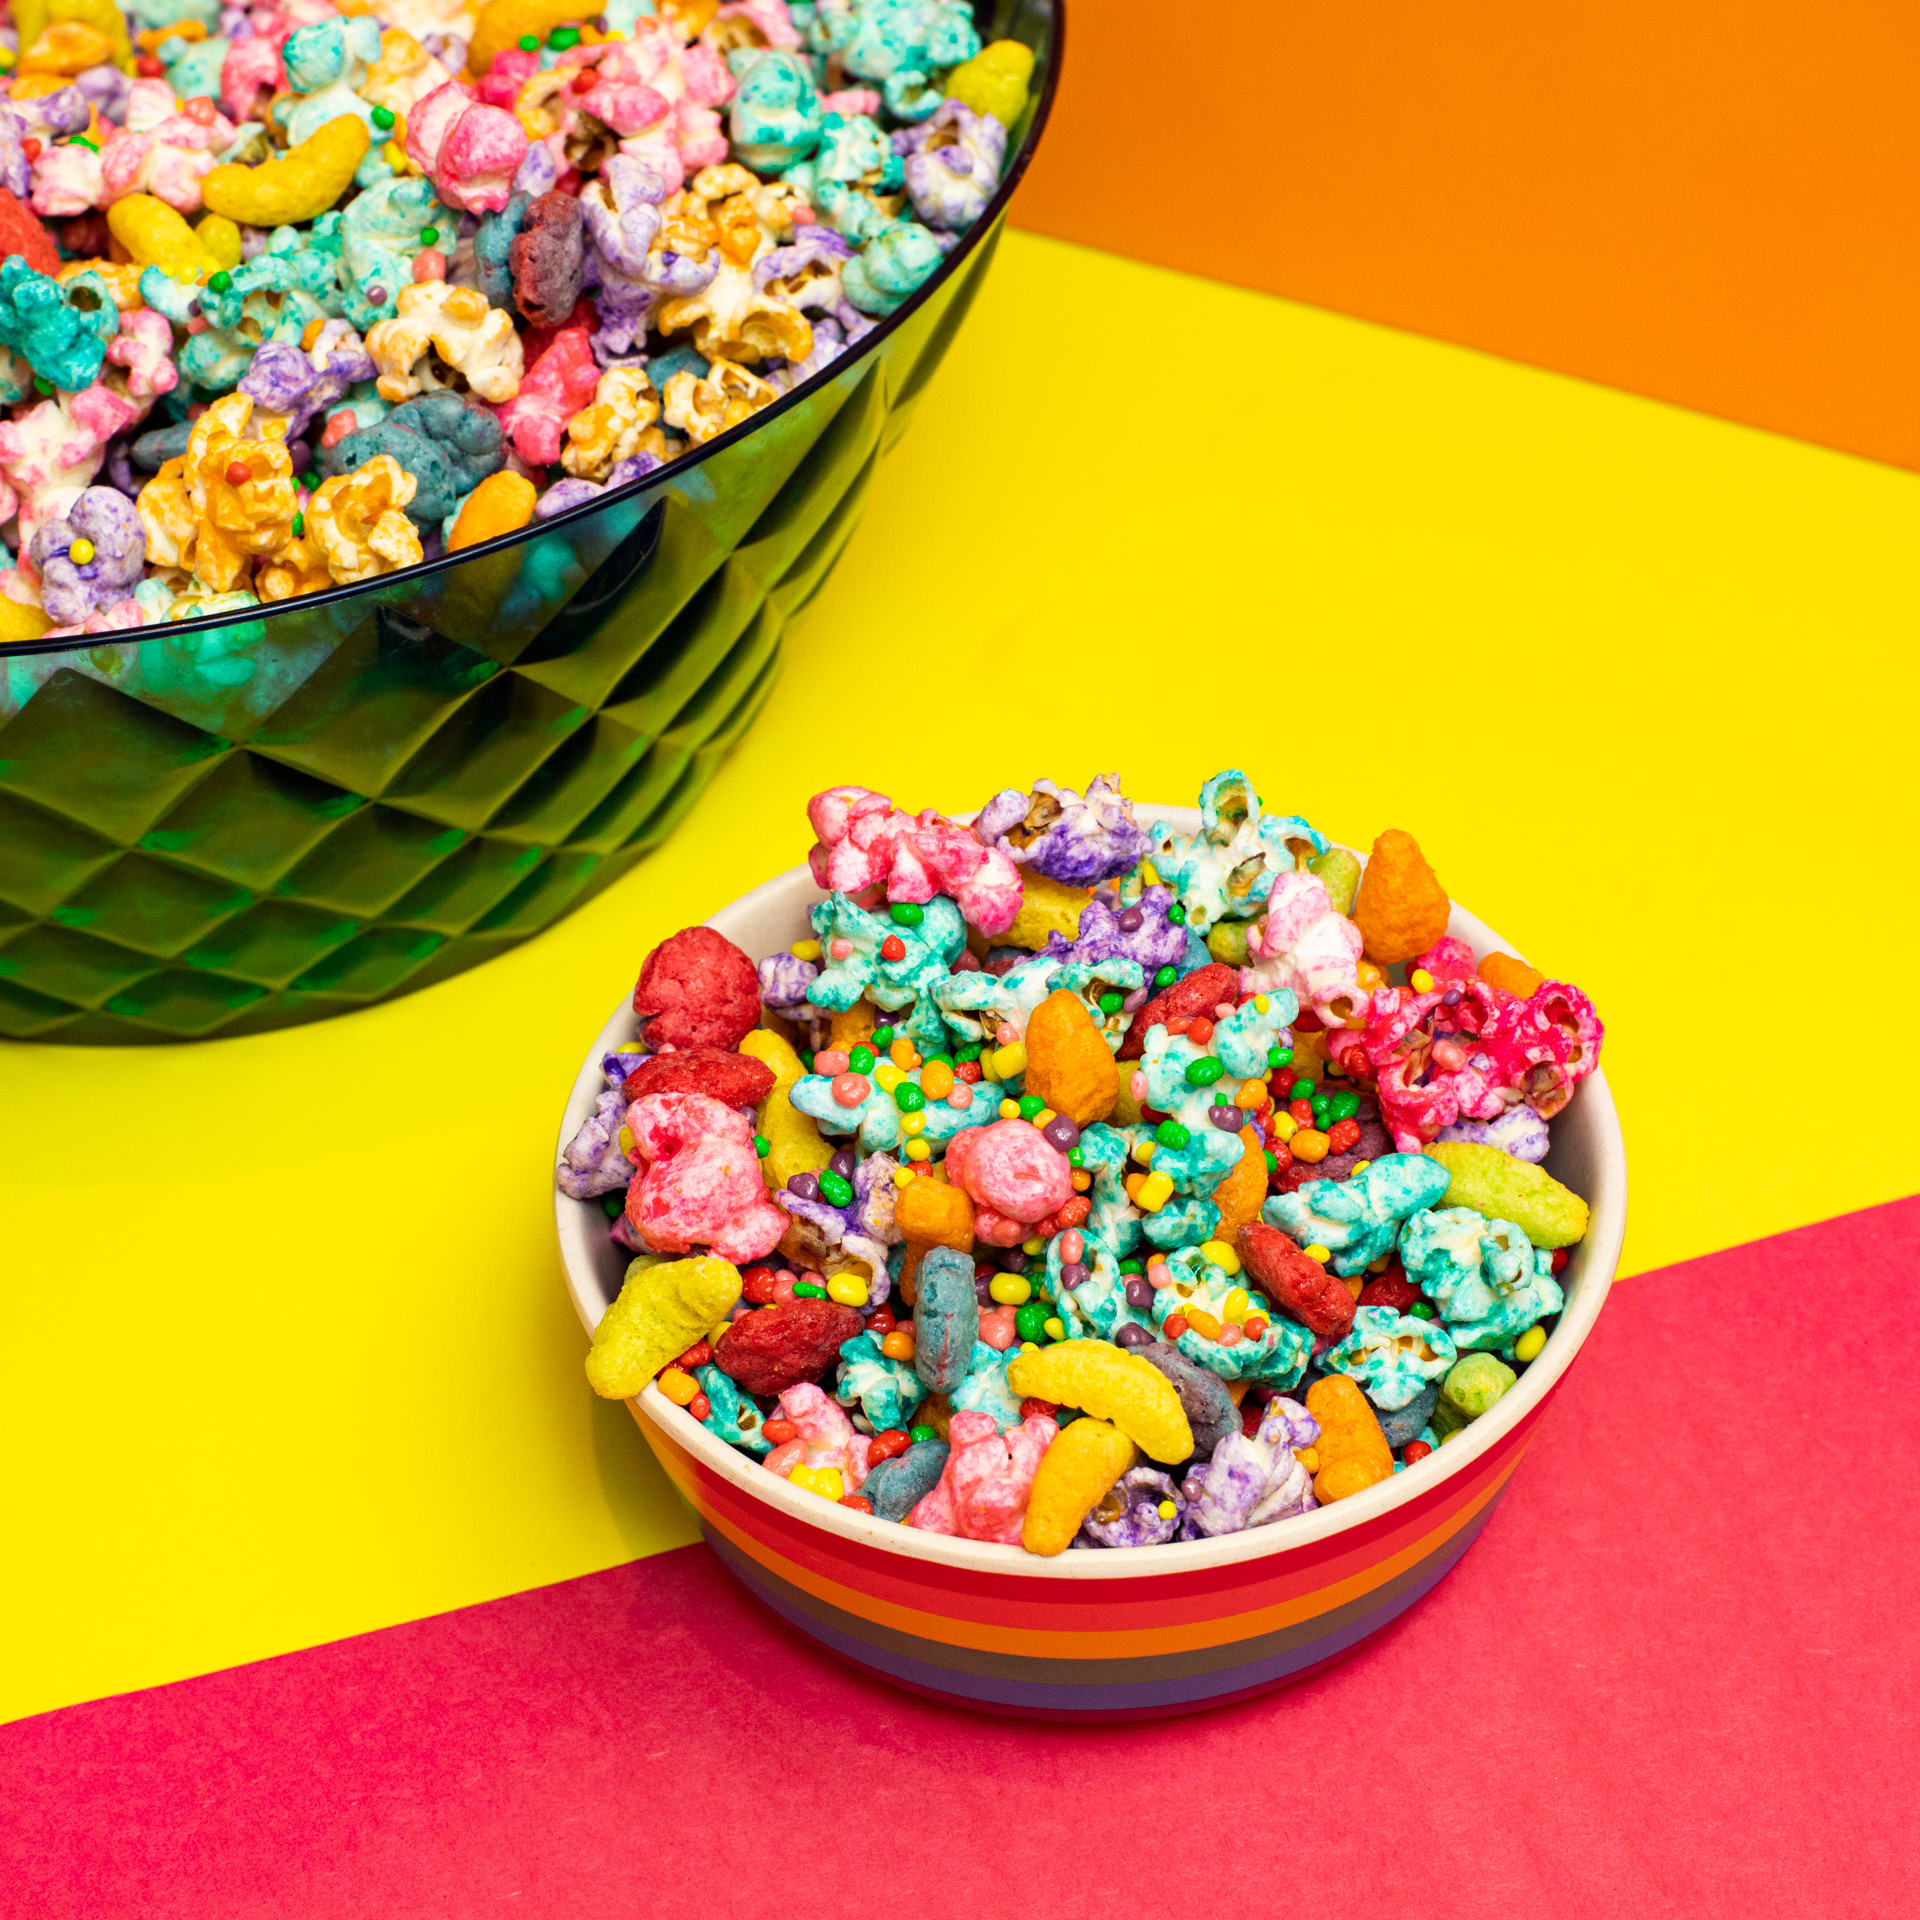 Fruity Blasts™ Snack Mix made with MALT-O-MEAL recipe